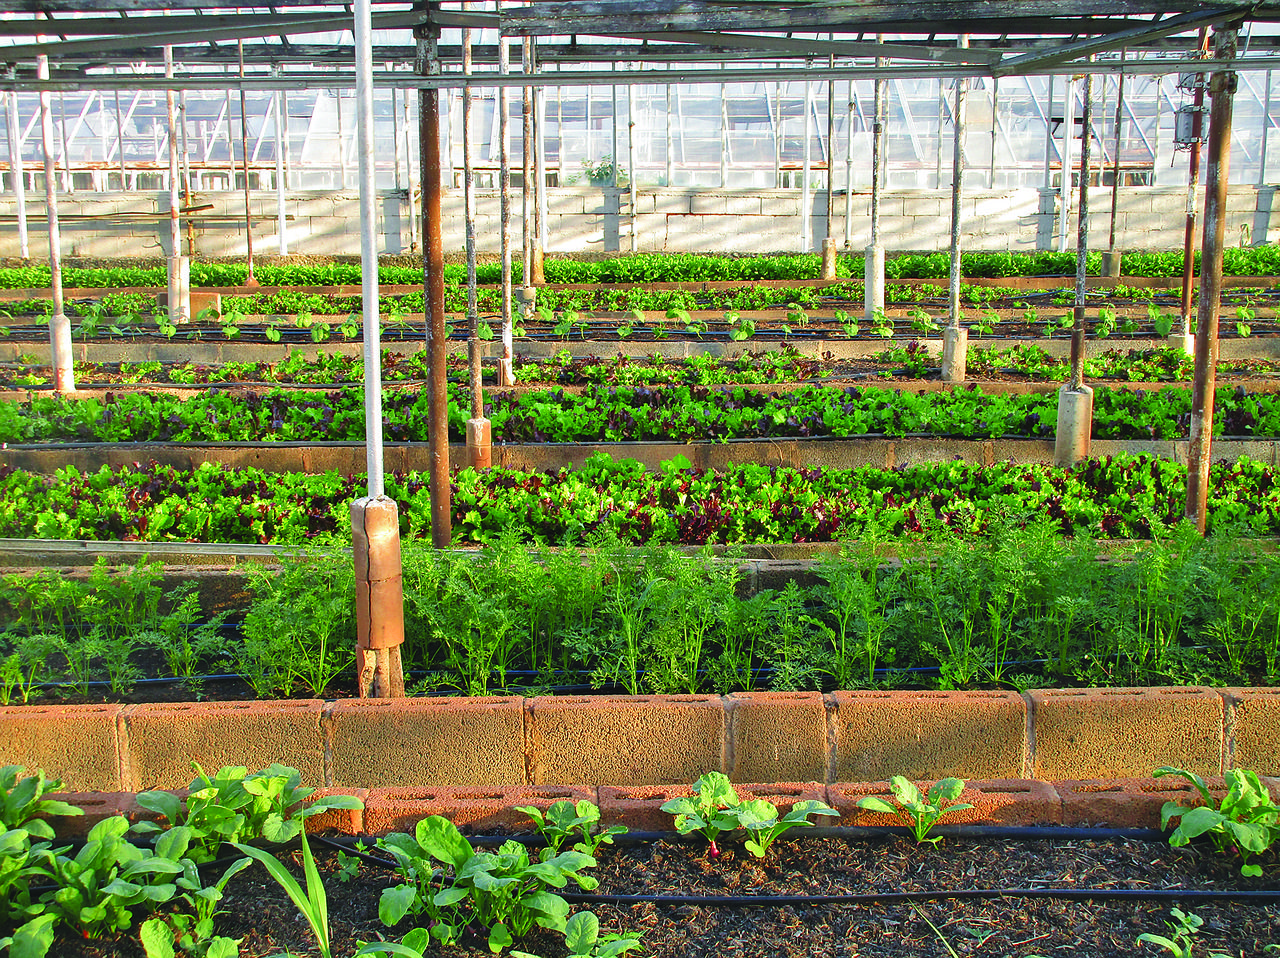 Support for the Andalusian agricultural sector